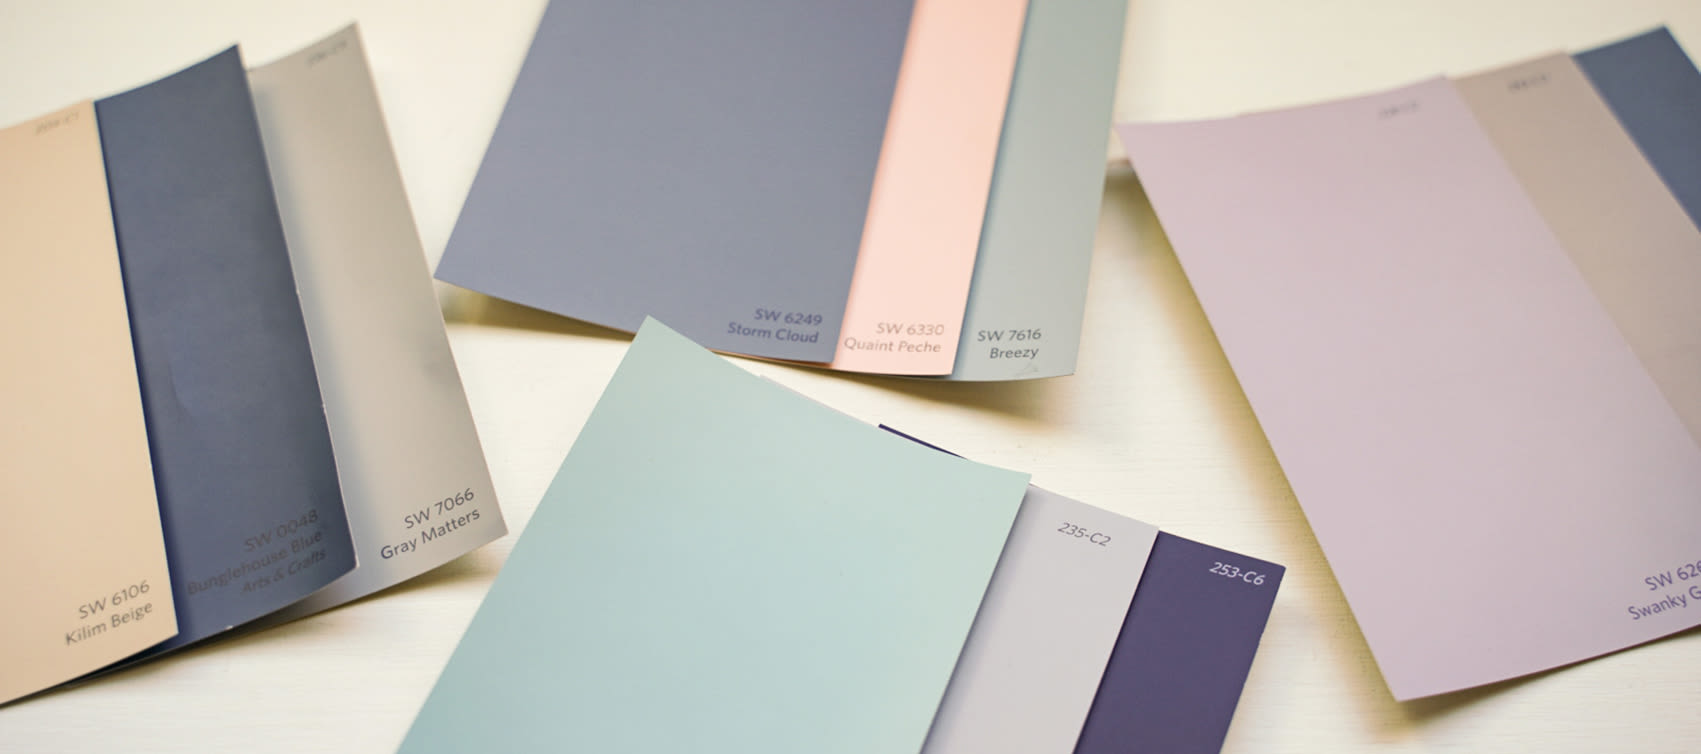 Paint Swatches at Tower Apartment Homes in Alameda